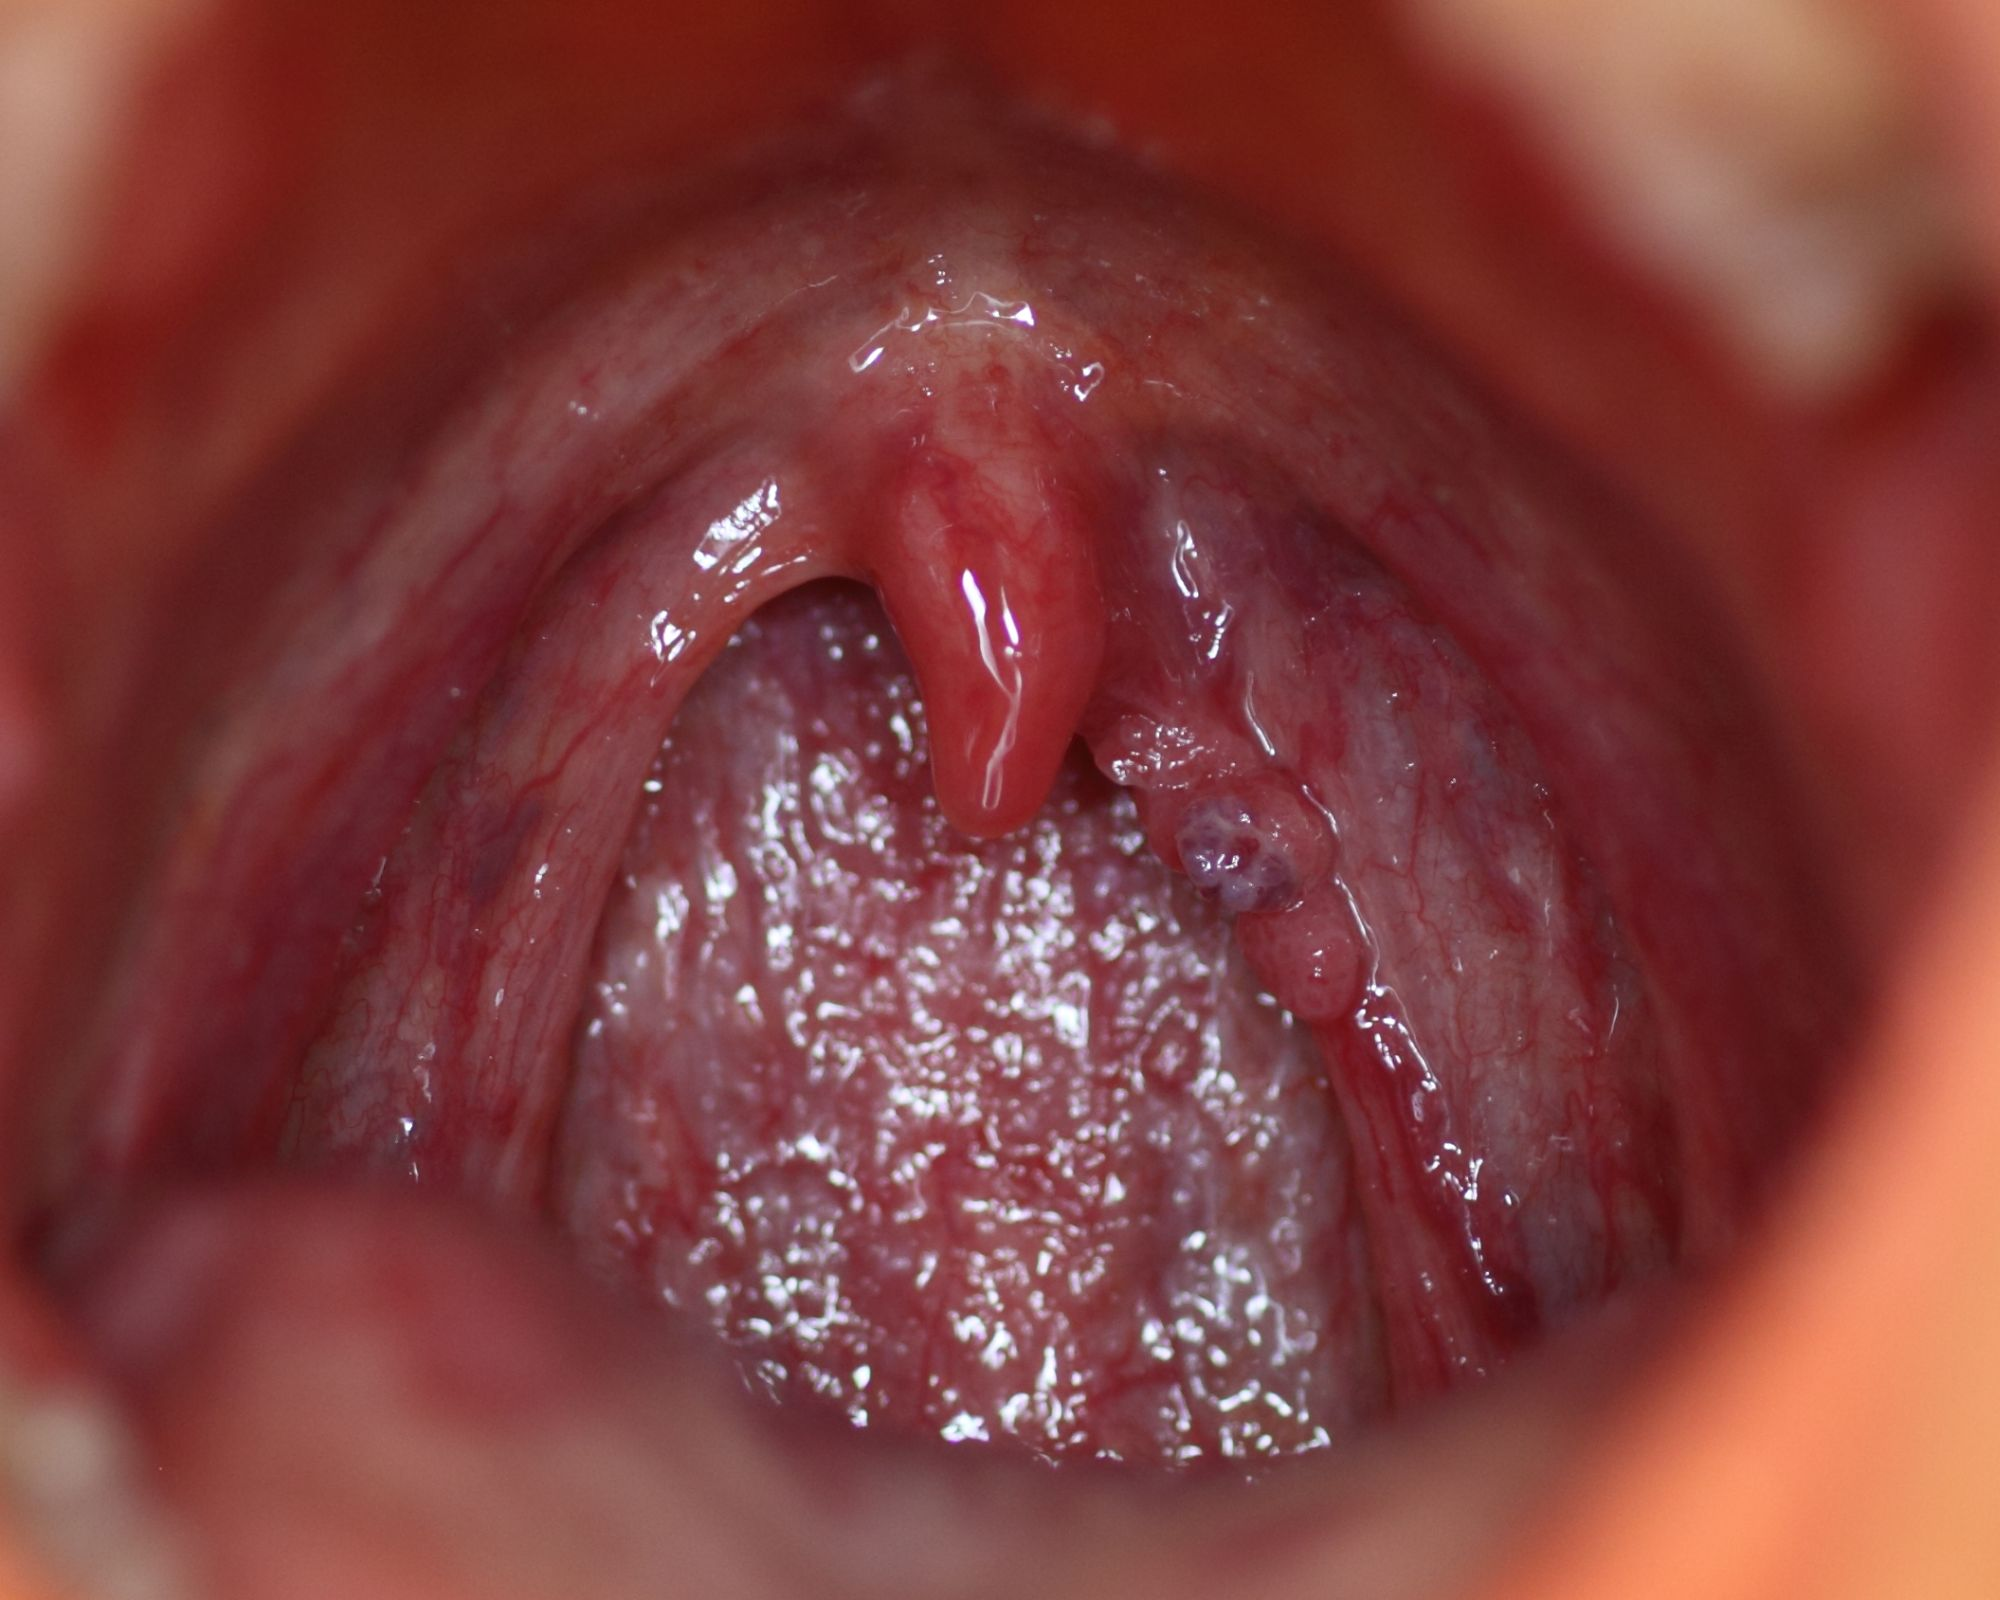 hpv in tongue pictures cheloo noutati